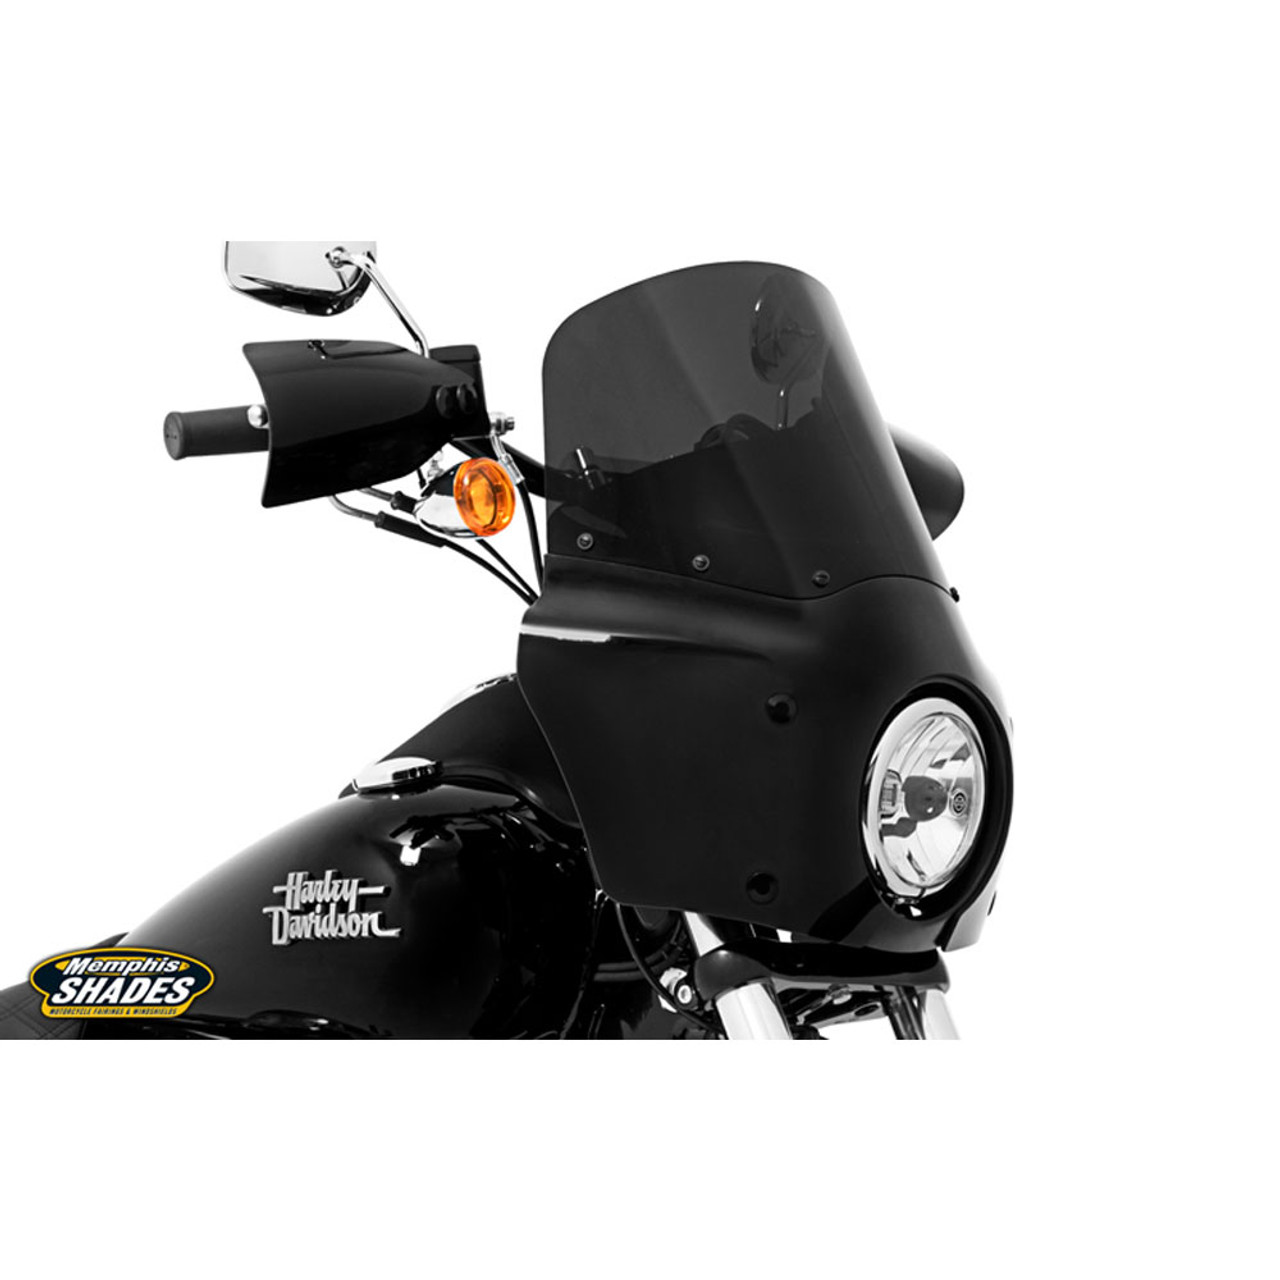 Mounting Block headlight Extension Black-Harley Davidson Dyna Street Bob GL...